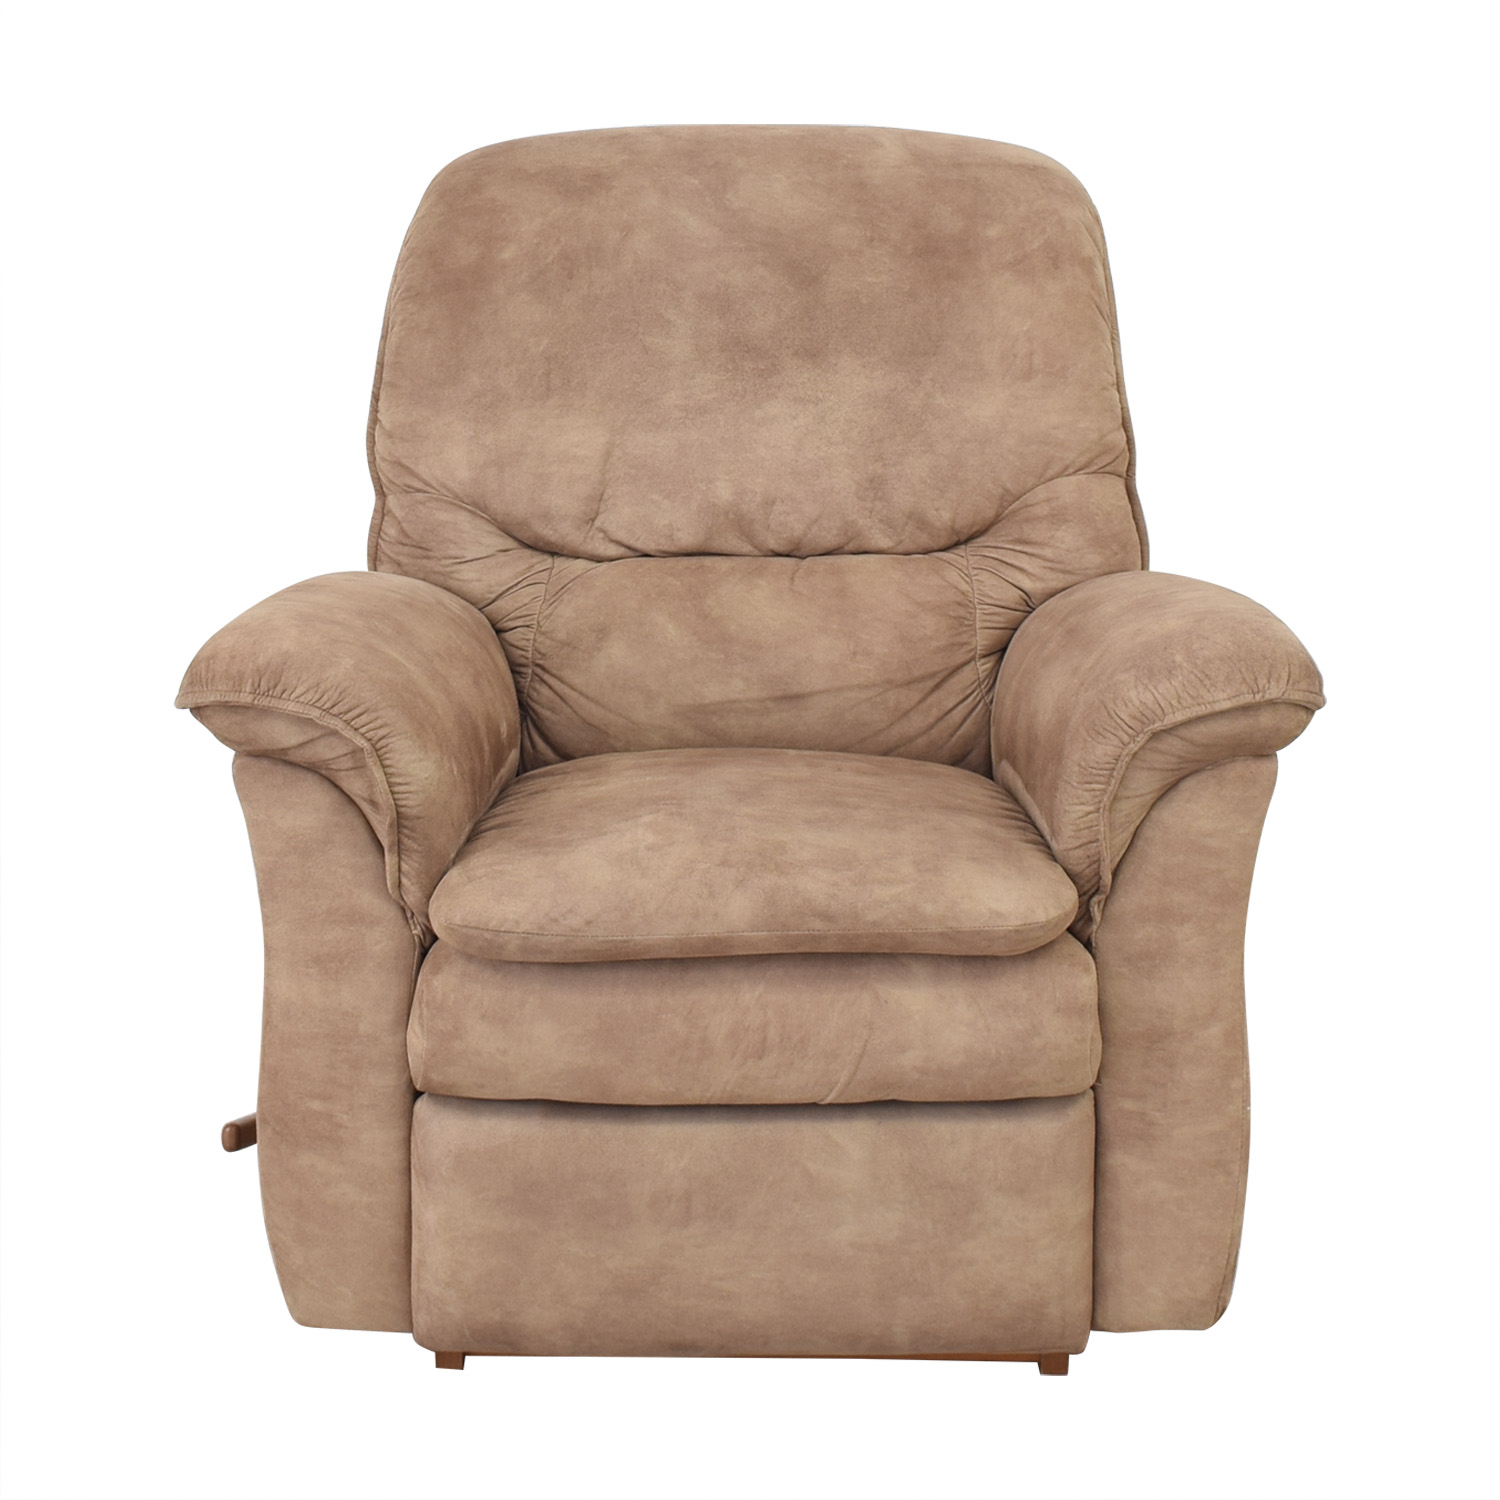 shop La-Z-Boy Trevor Recliner Rocker La-Z-Boy